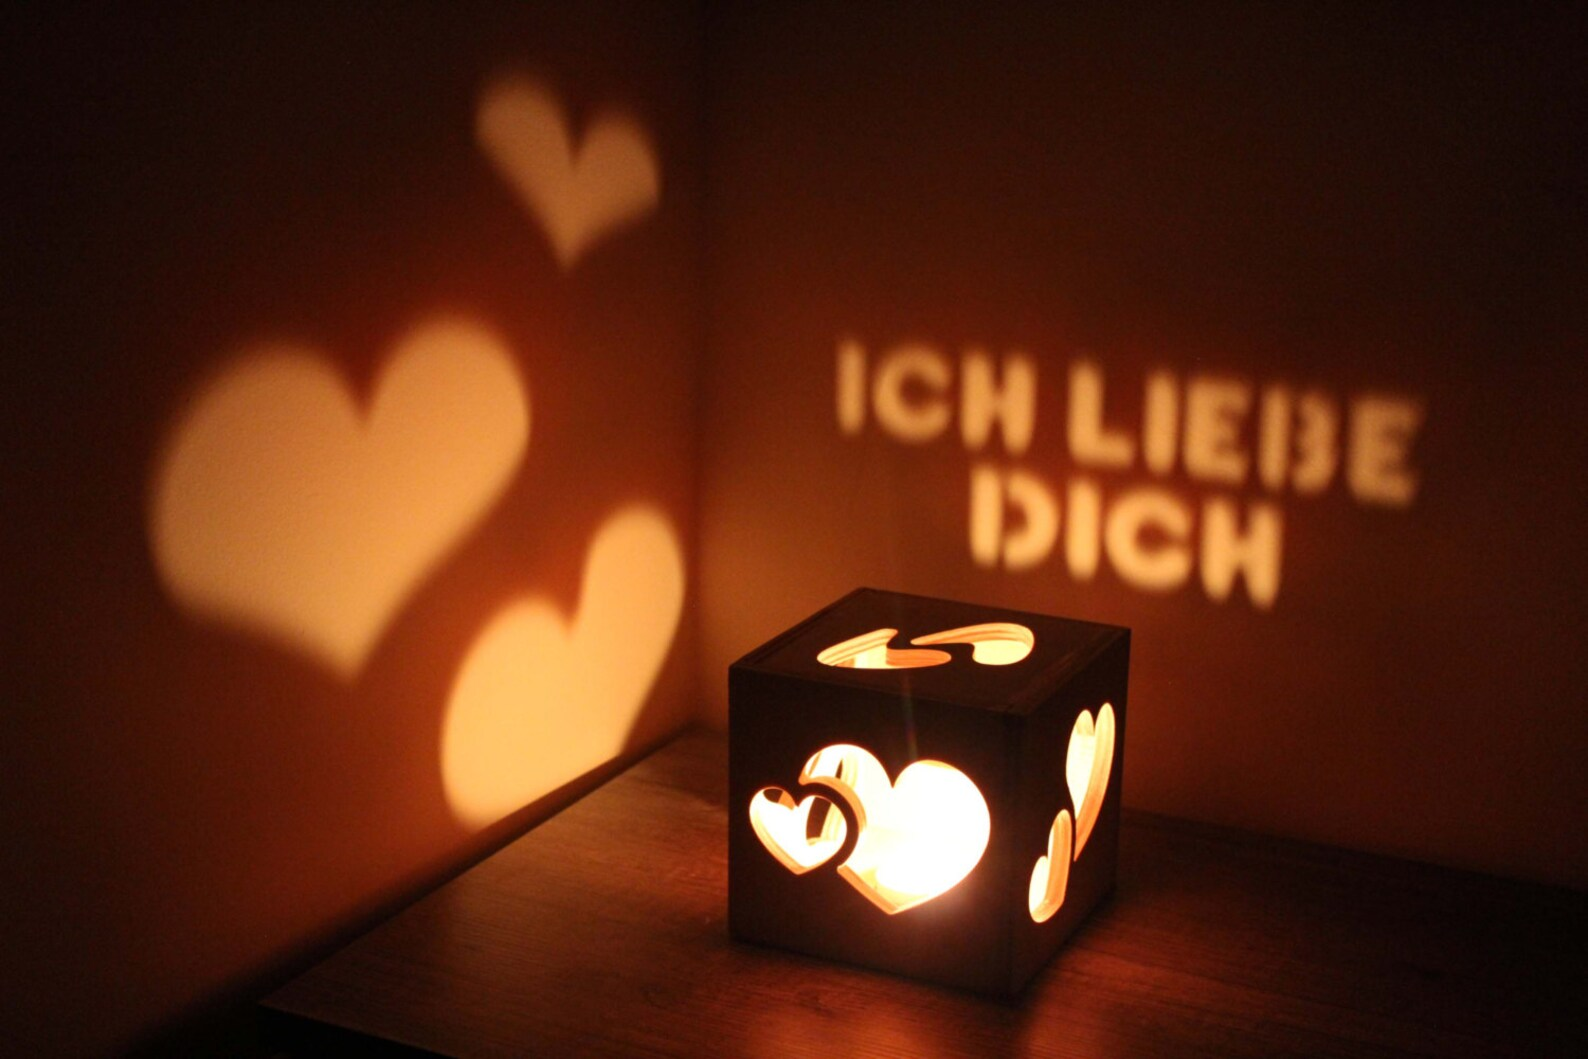 Long Distance Relationship Ich Liebe Dich Valentines Day Gift Love Sig